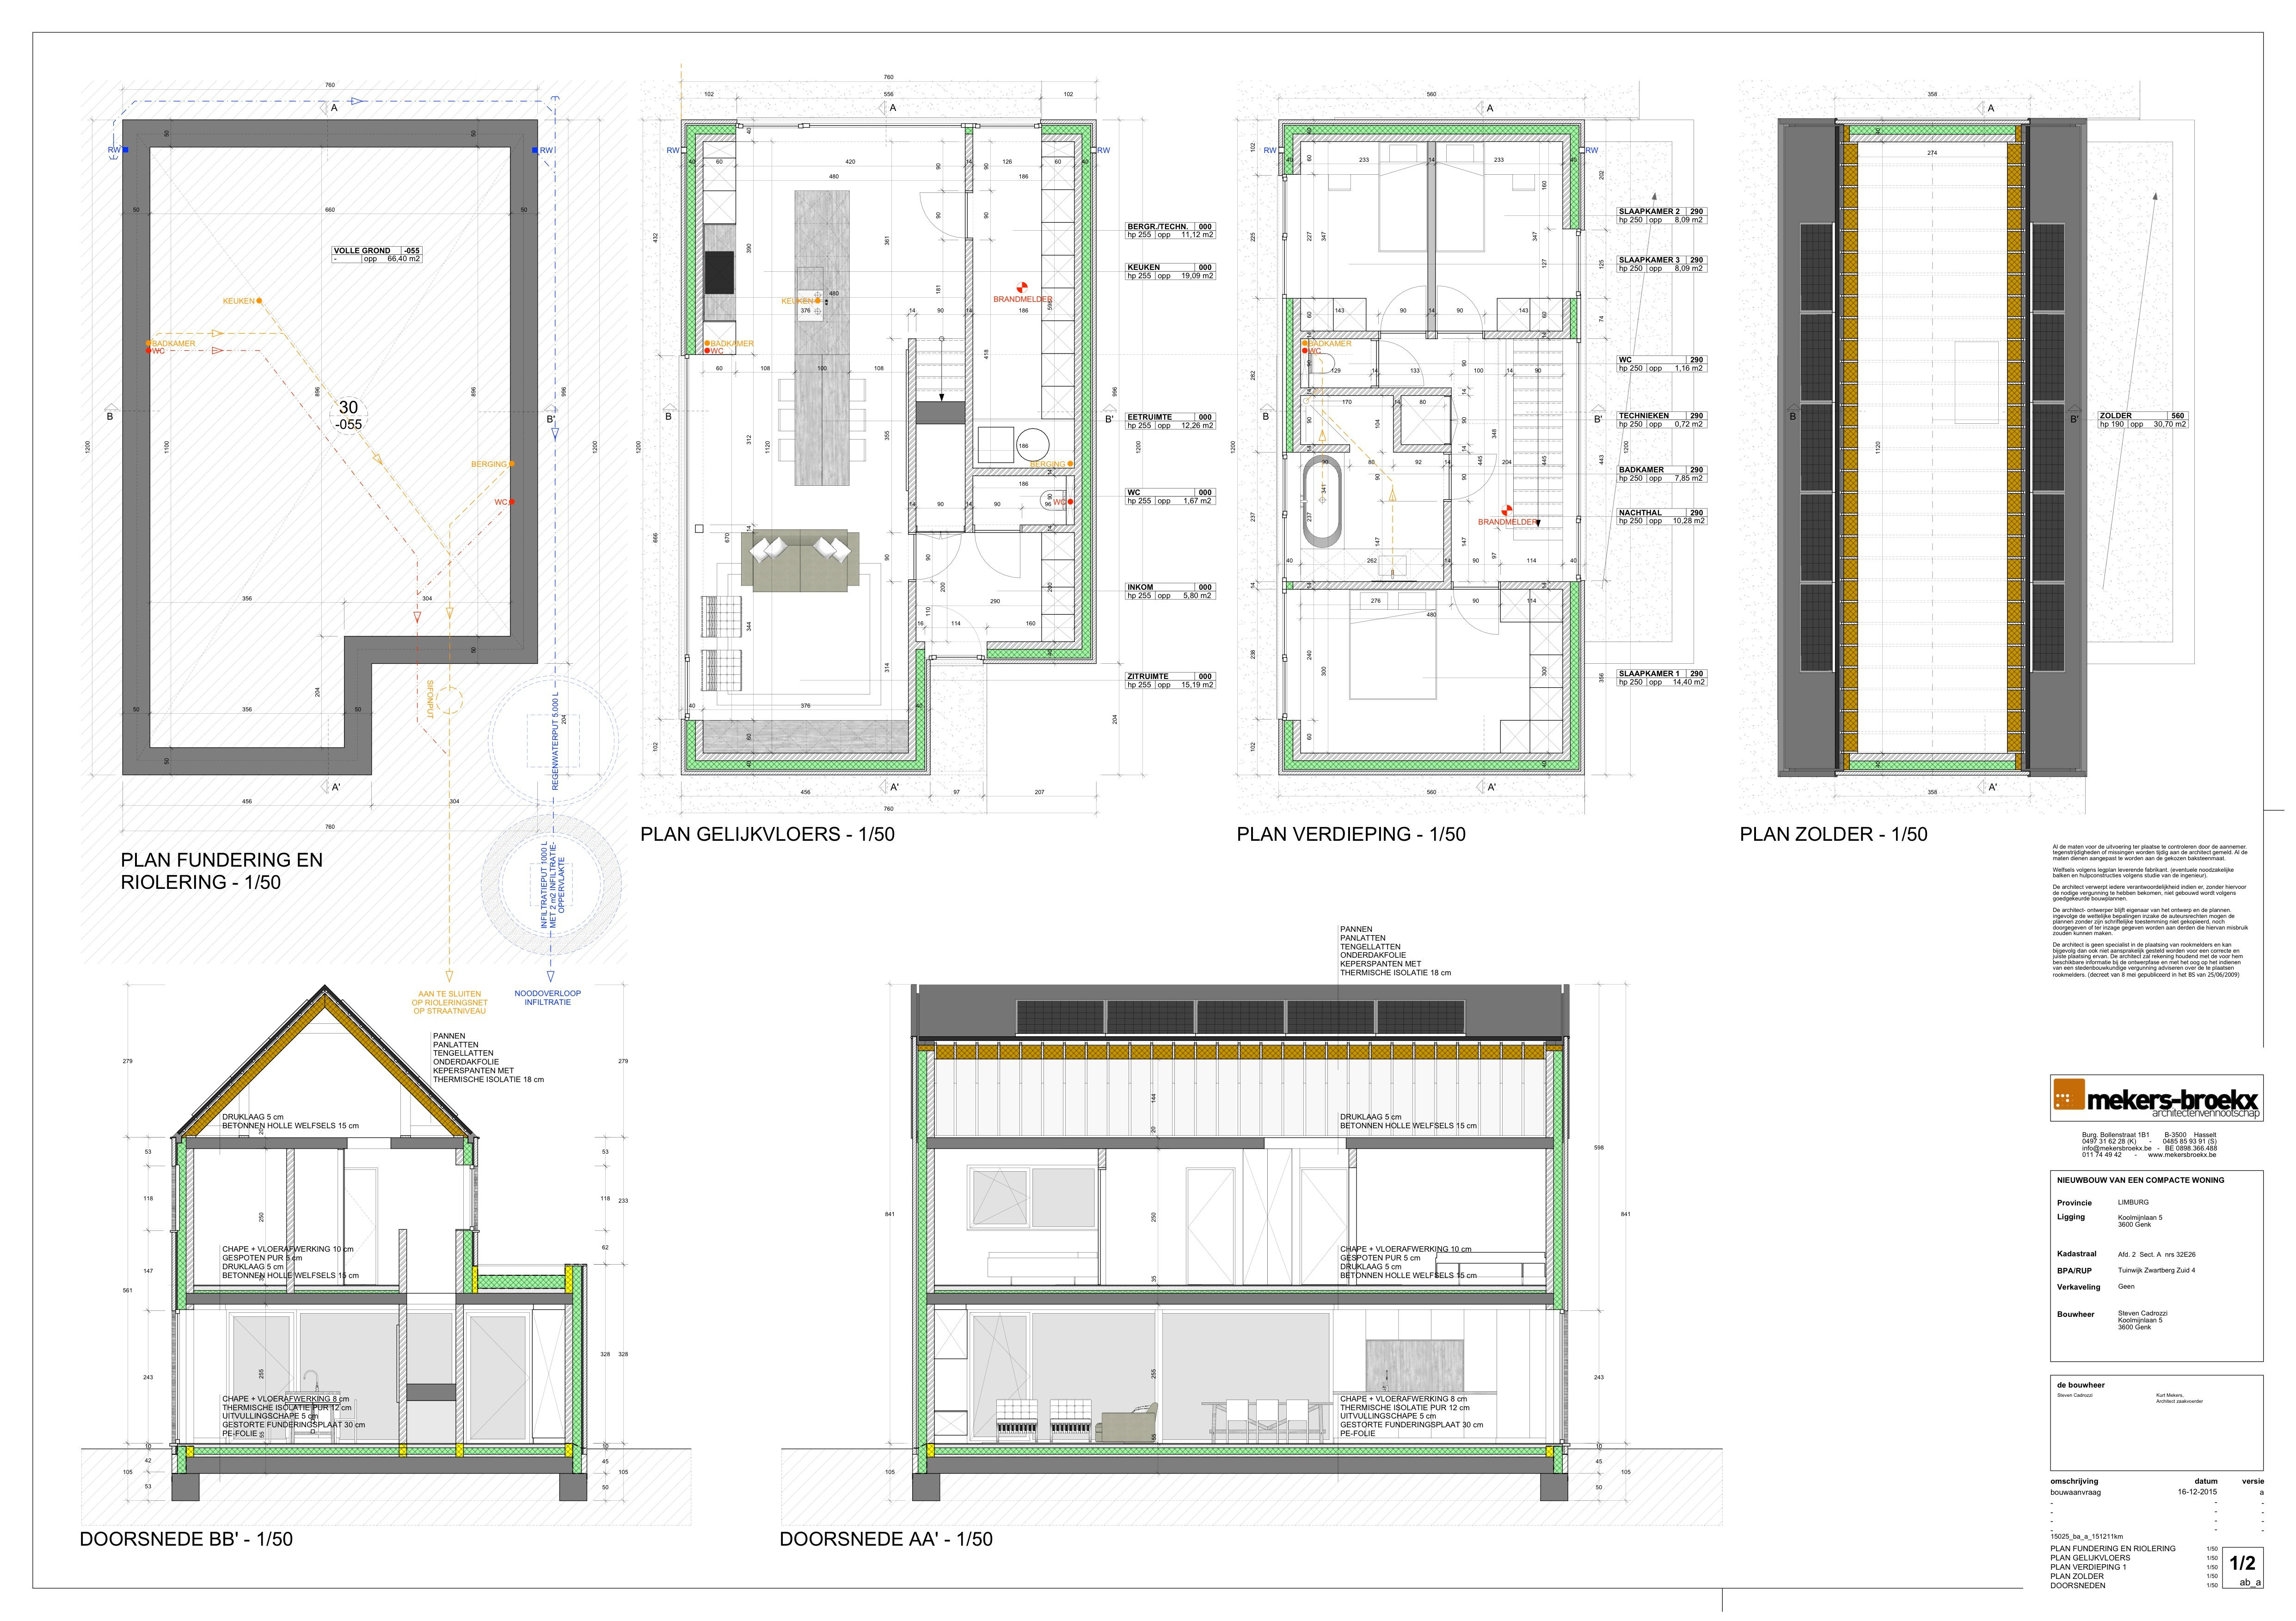 Plans And Sections Created With Skalp For Sketchup Project By Mekers Broeckx Architectenvennootschap Architectural Section How To Plan Projects